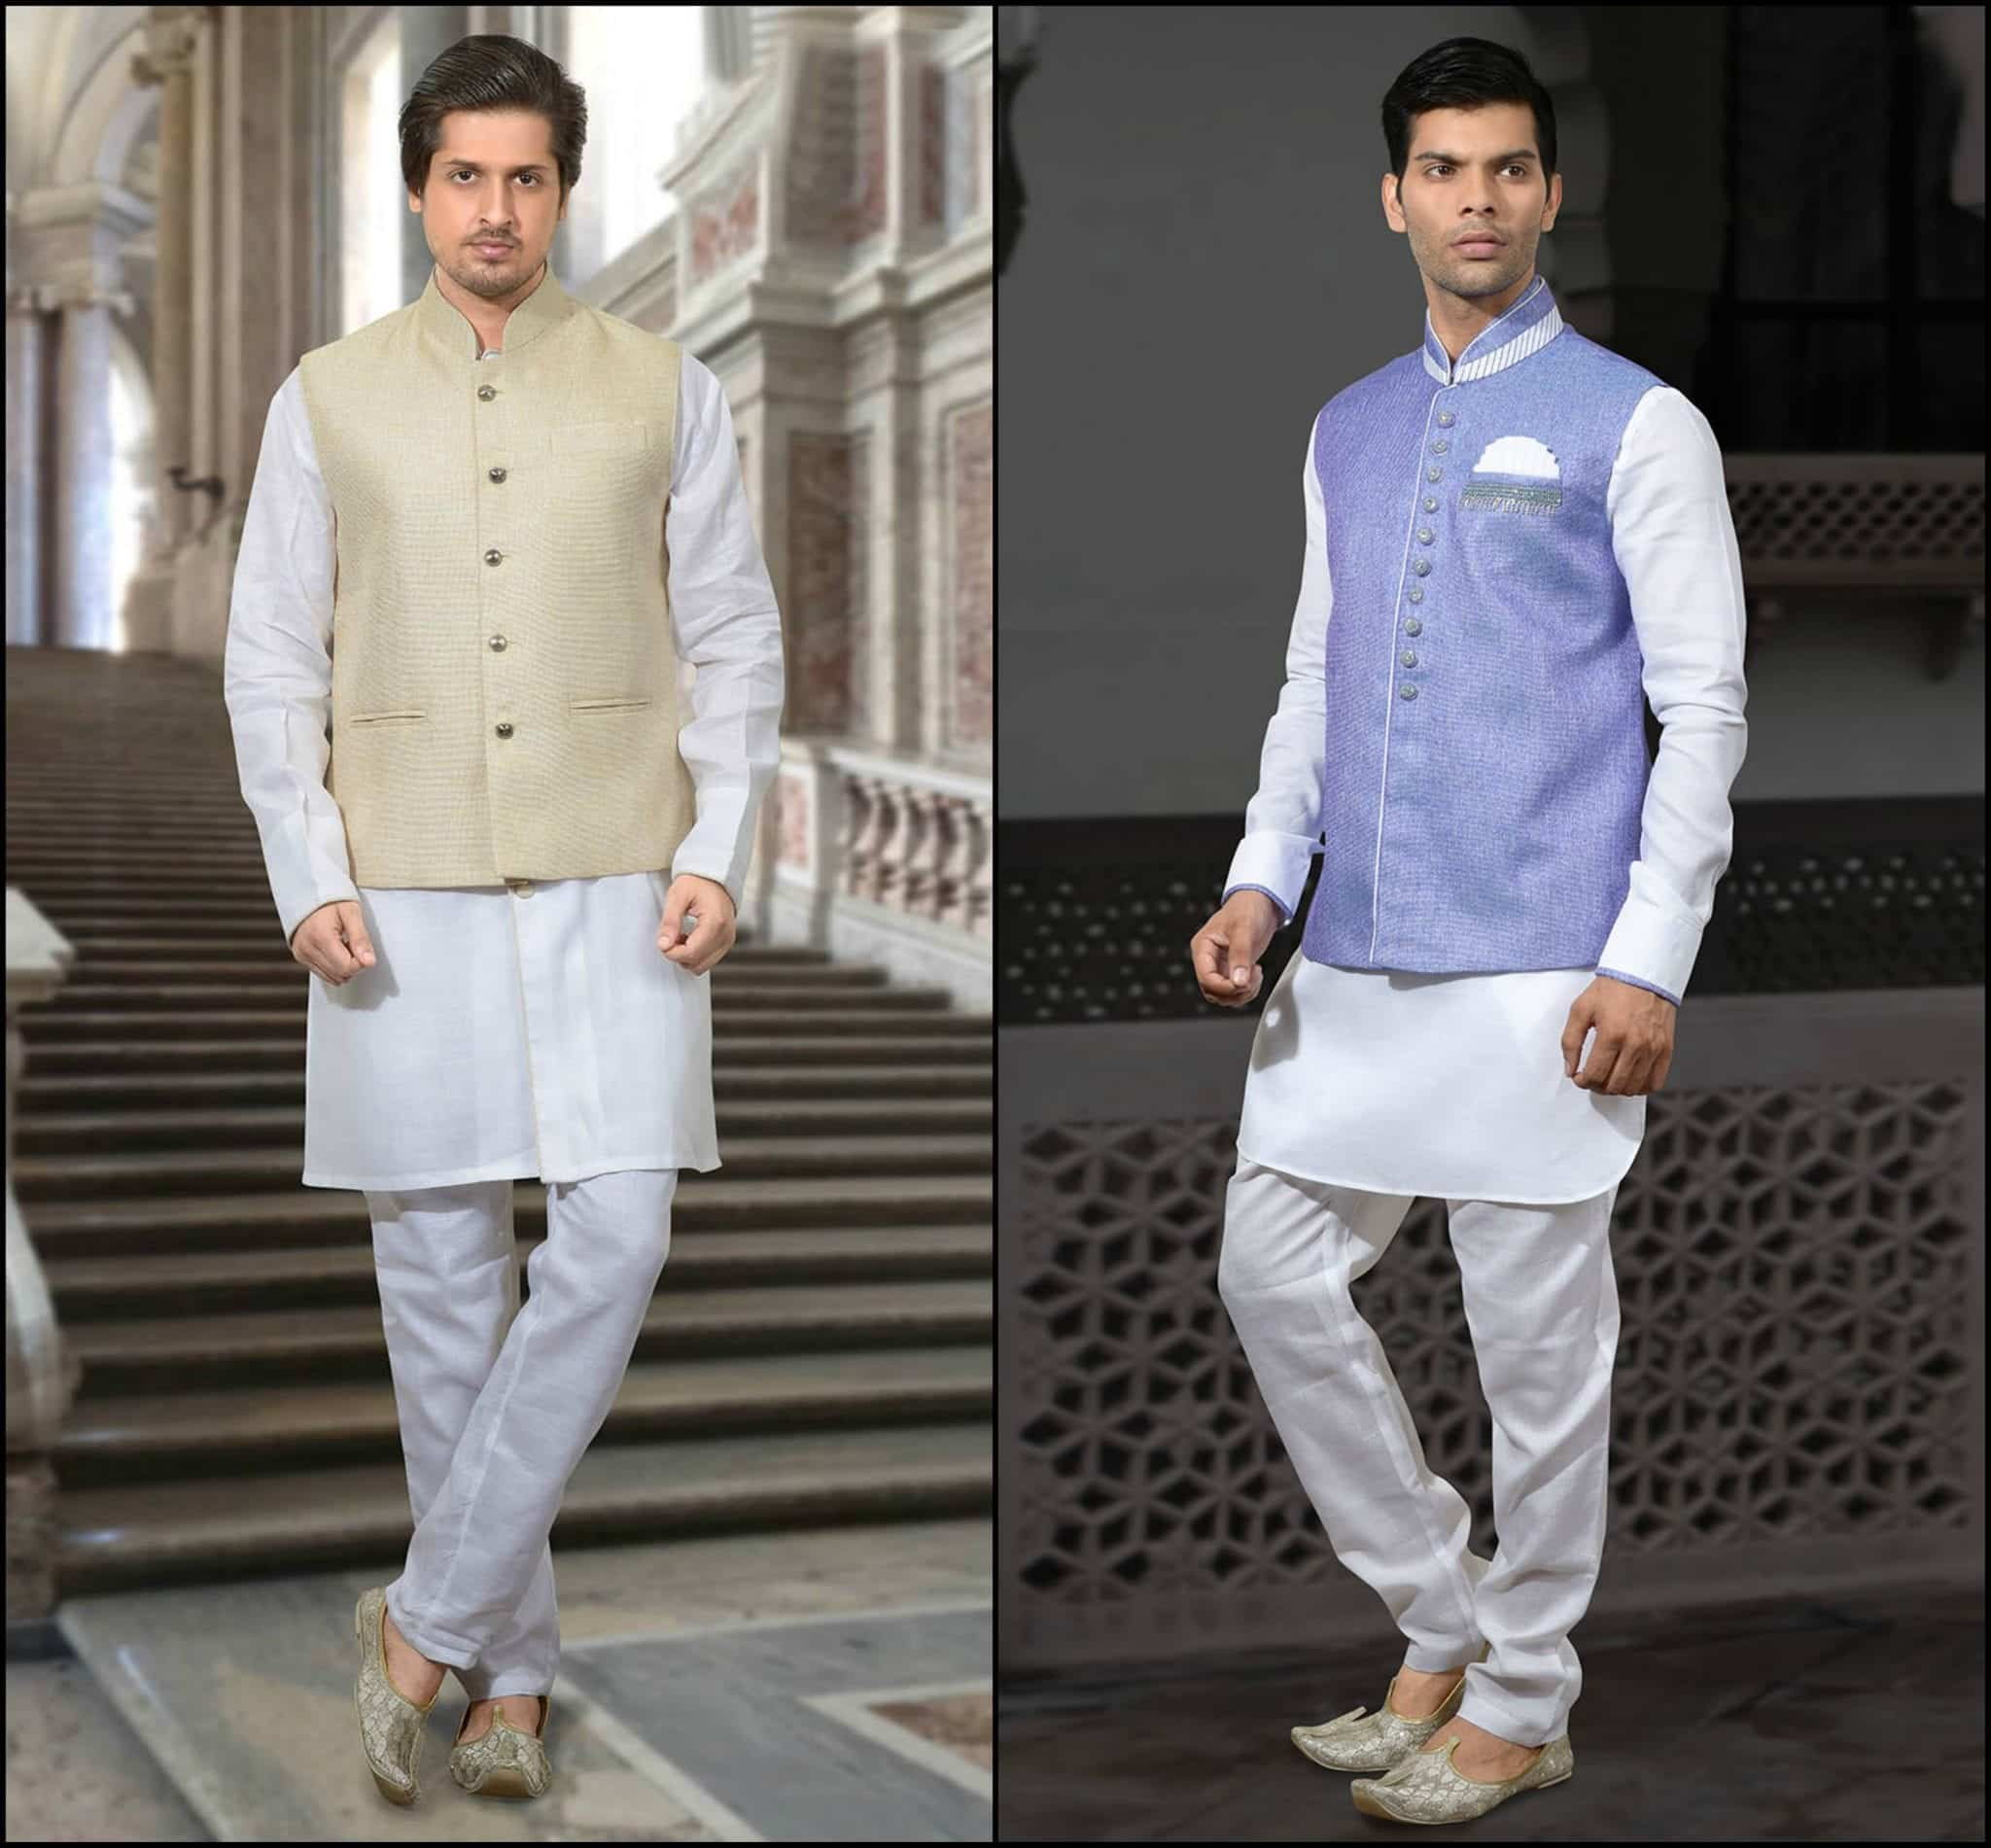 Kurta Pajama for Men-18 Men's Kurta Pajama Styles for Wedding